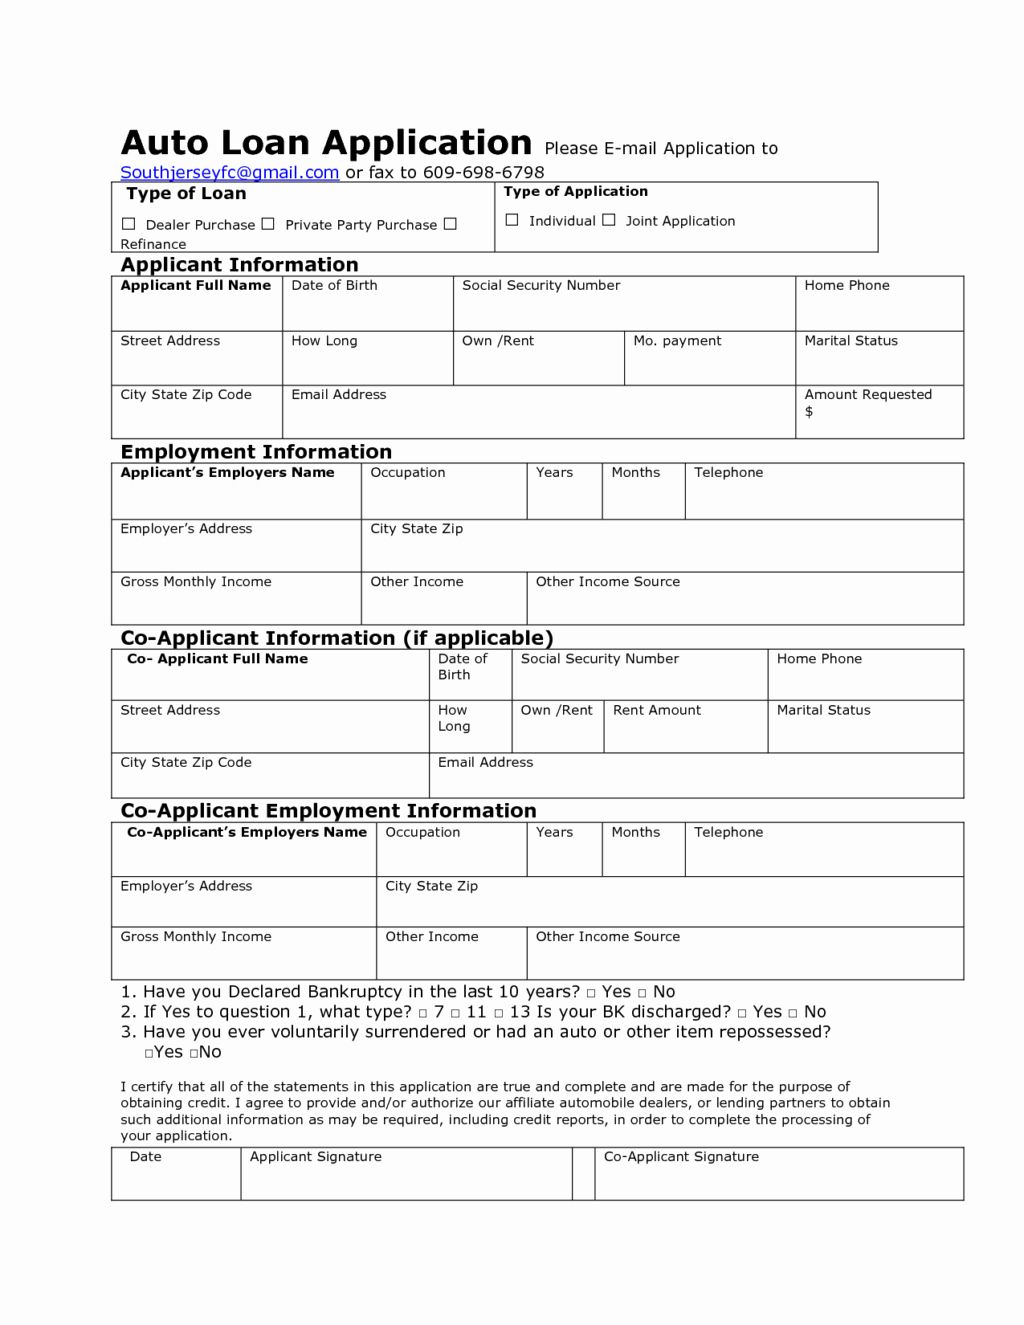 Personal Loan Application Form Template Inspirational Loan Application Form By Mj Loan Application Application Form Credit Applications